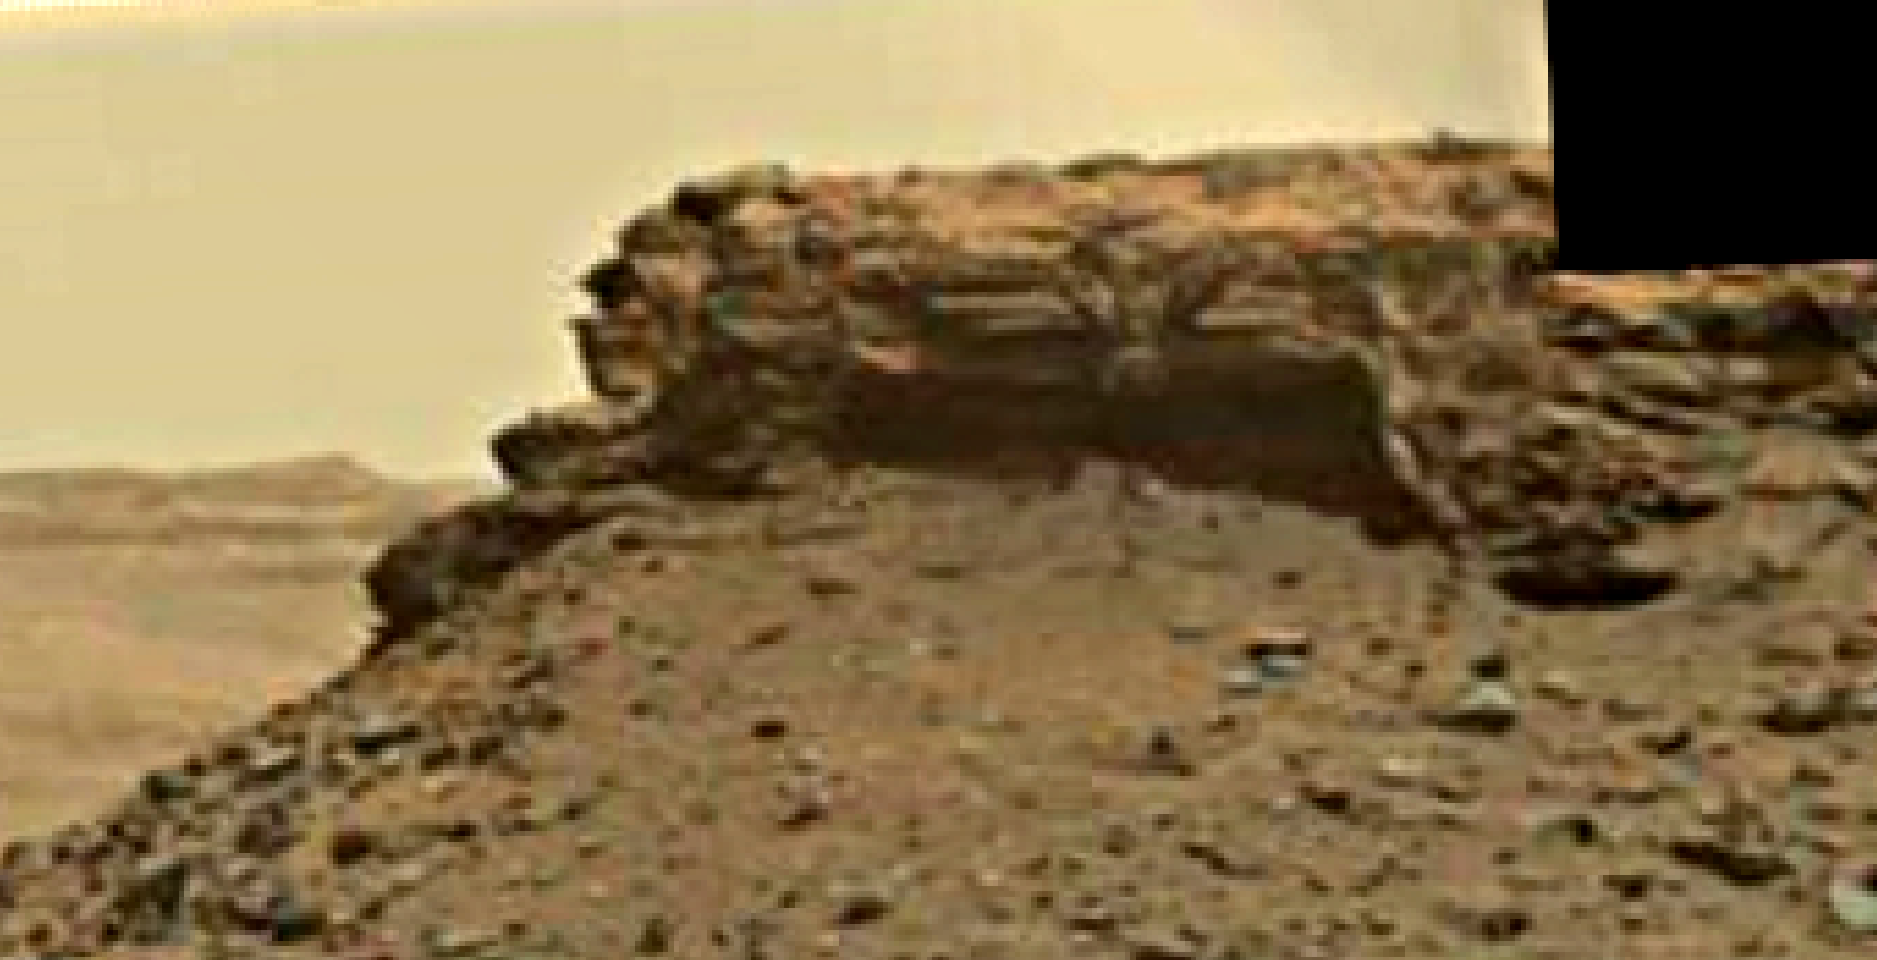 mars sol 1438 anomaly artifacts 2 was life on mars